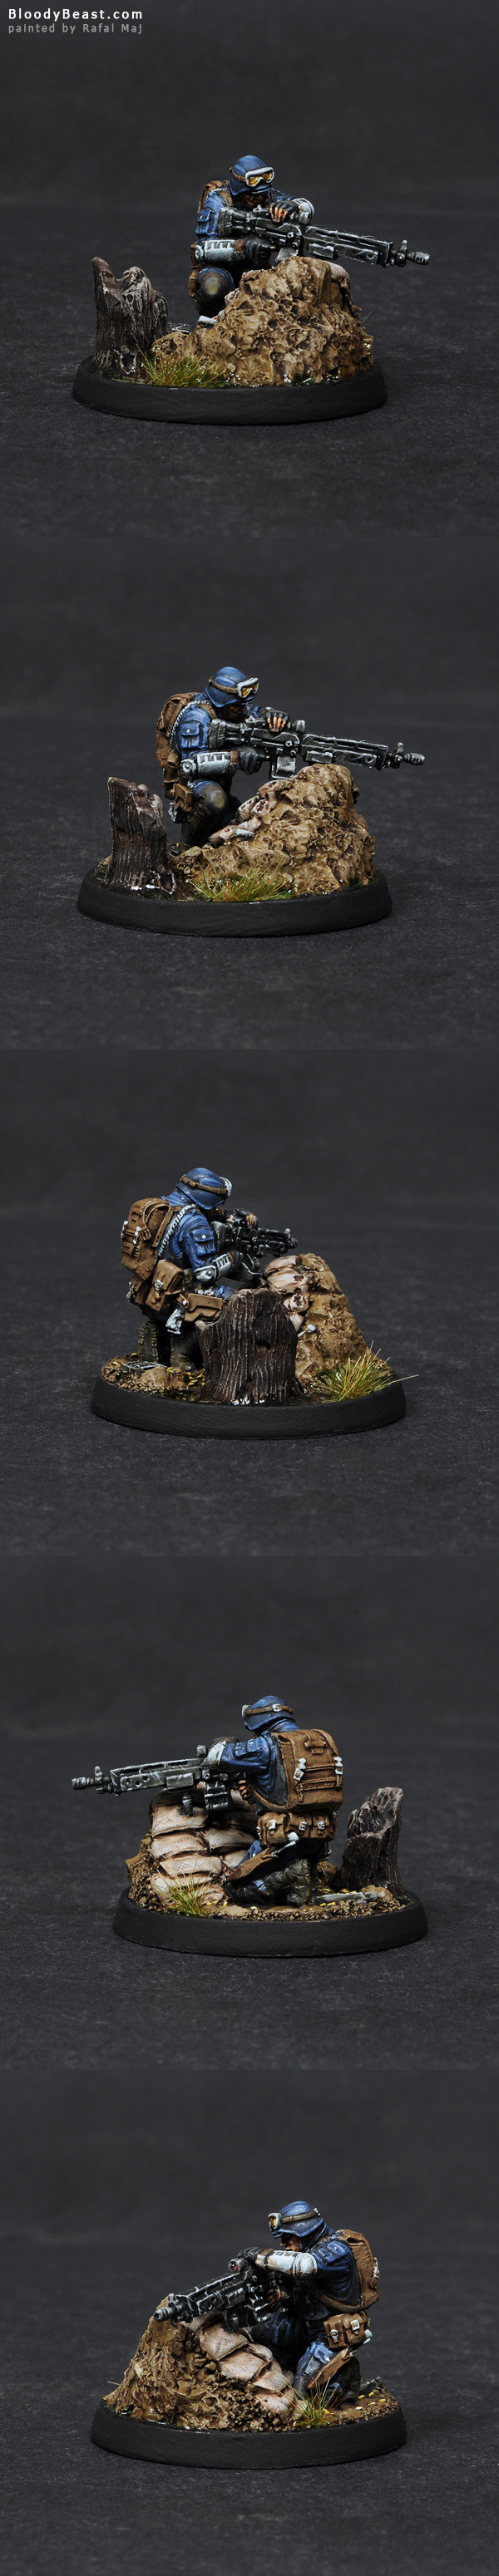 Ariadna Zouaves HMG painted by Rafal Maj (BloodyBeast.com)